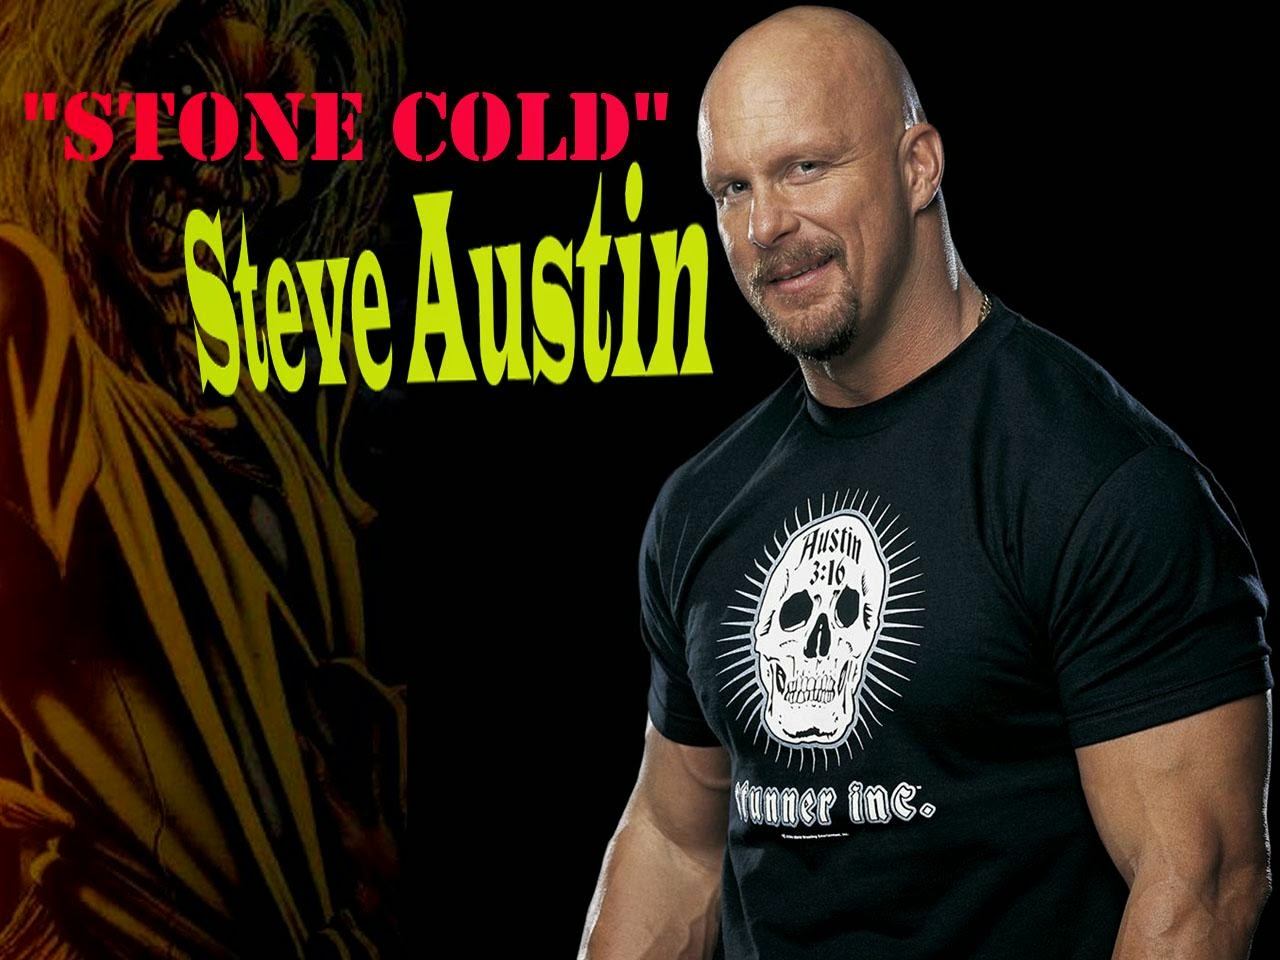 Stone Cold Steve Austin Hd Wallpapers Download WWE 1280x960